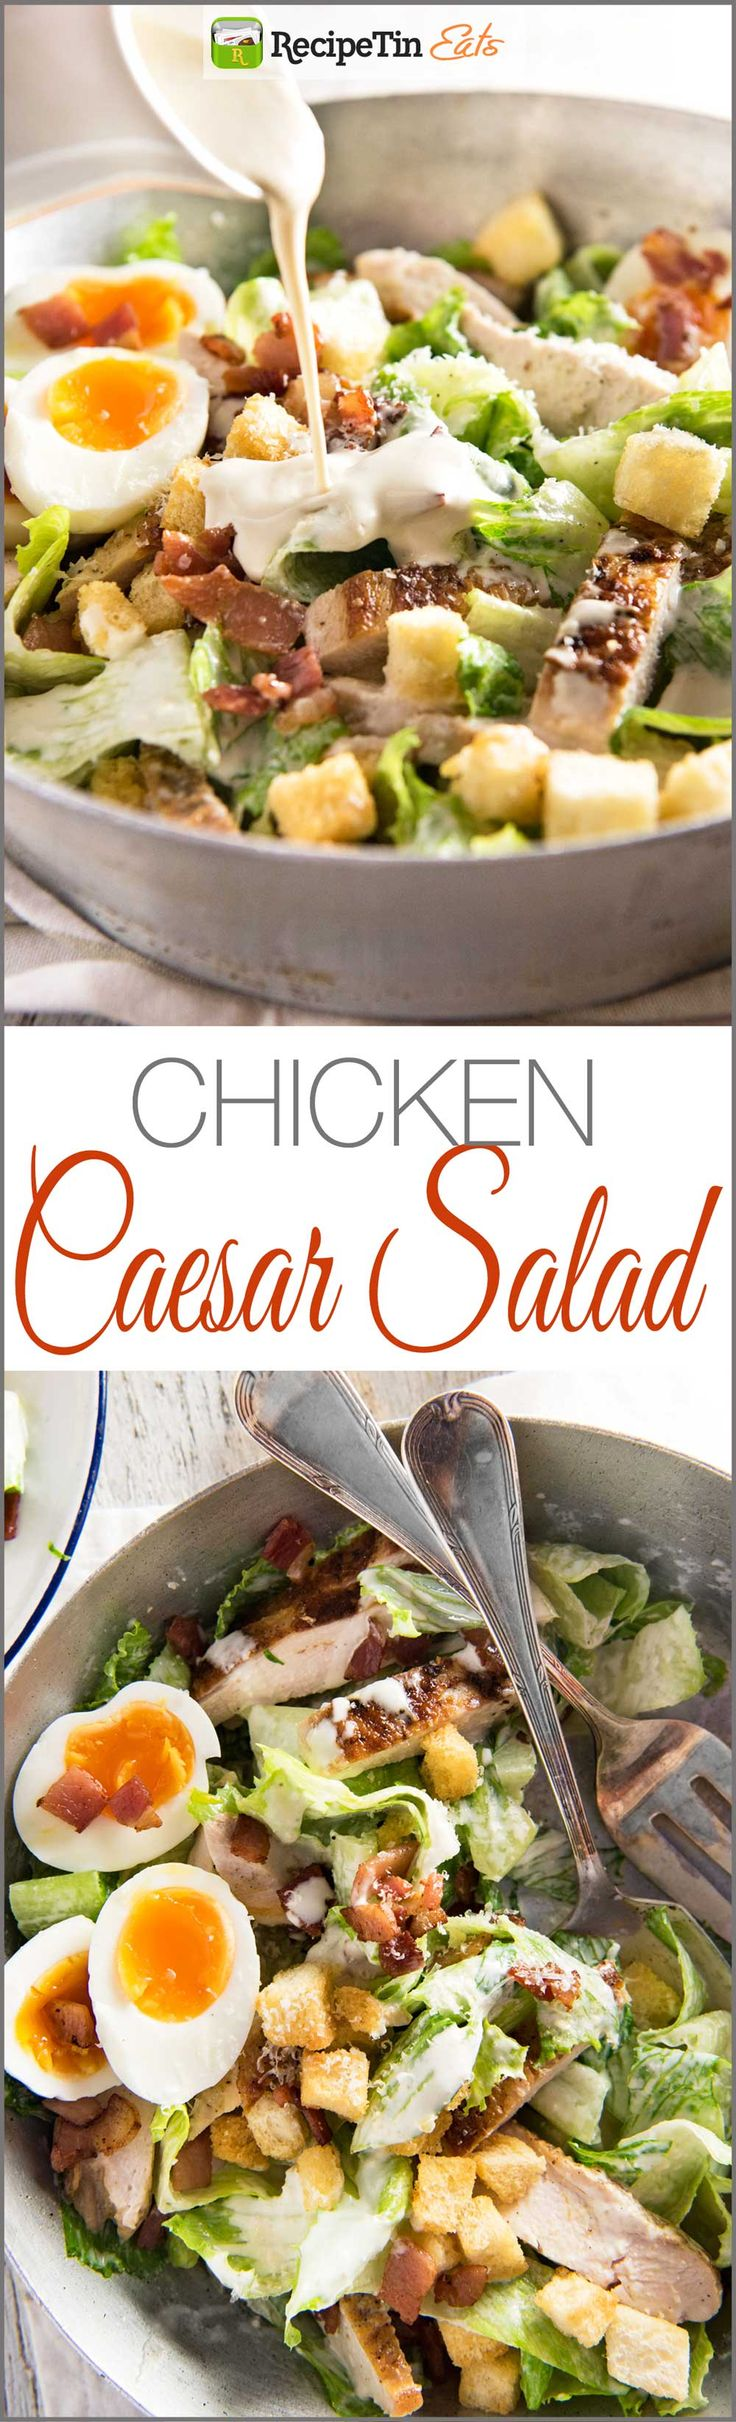 Chicken Caesar Salad - Restaurant quality salad, it's all about the homemade dressing!